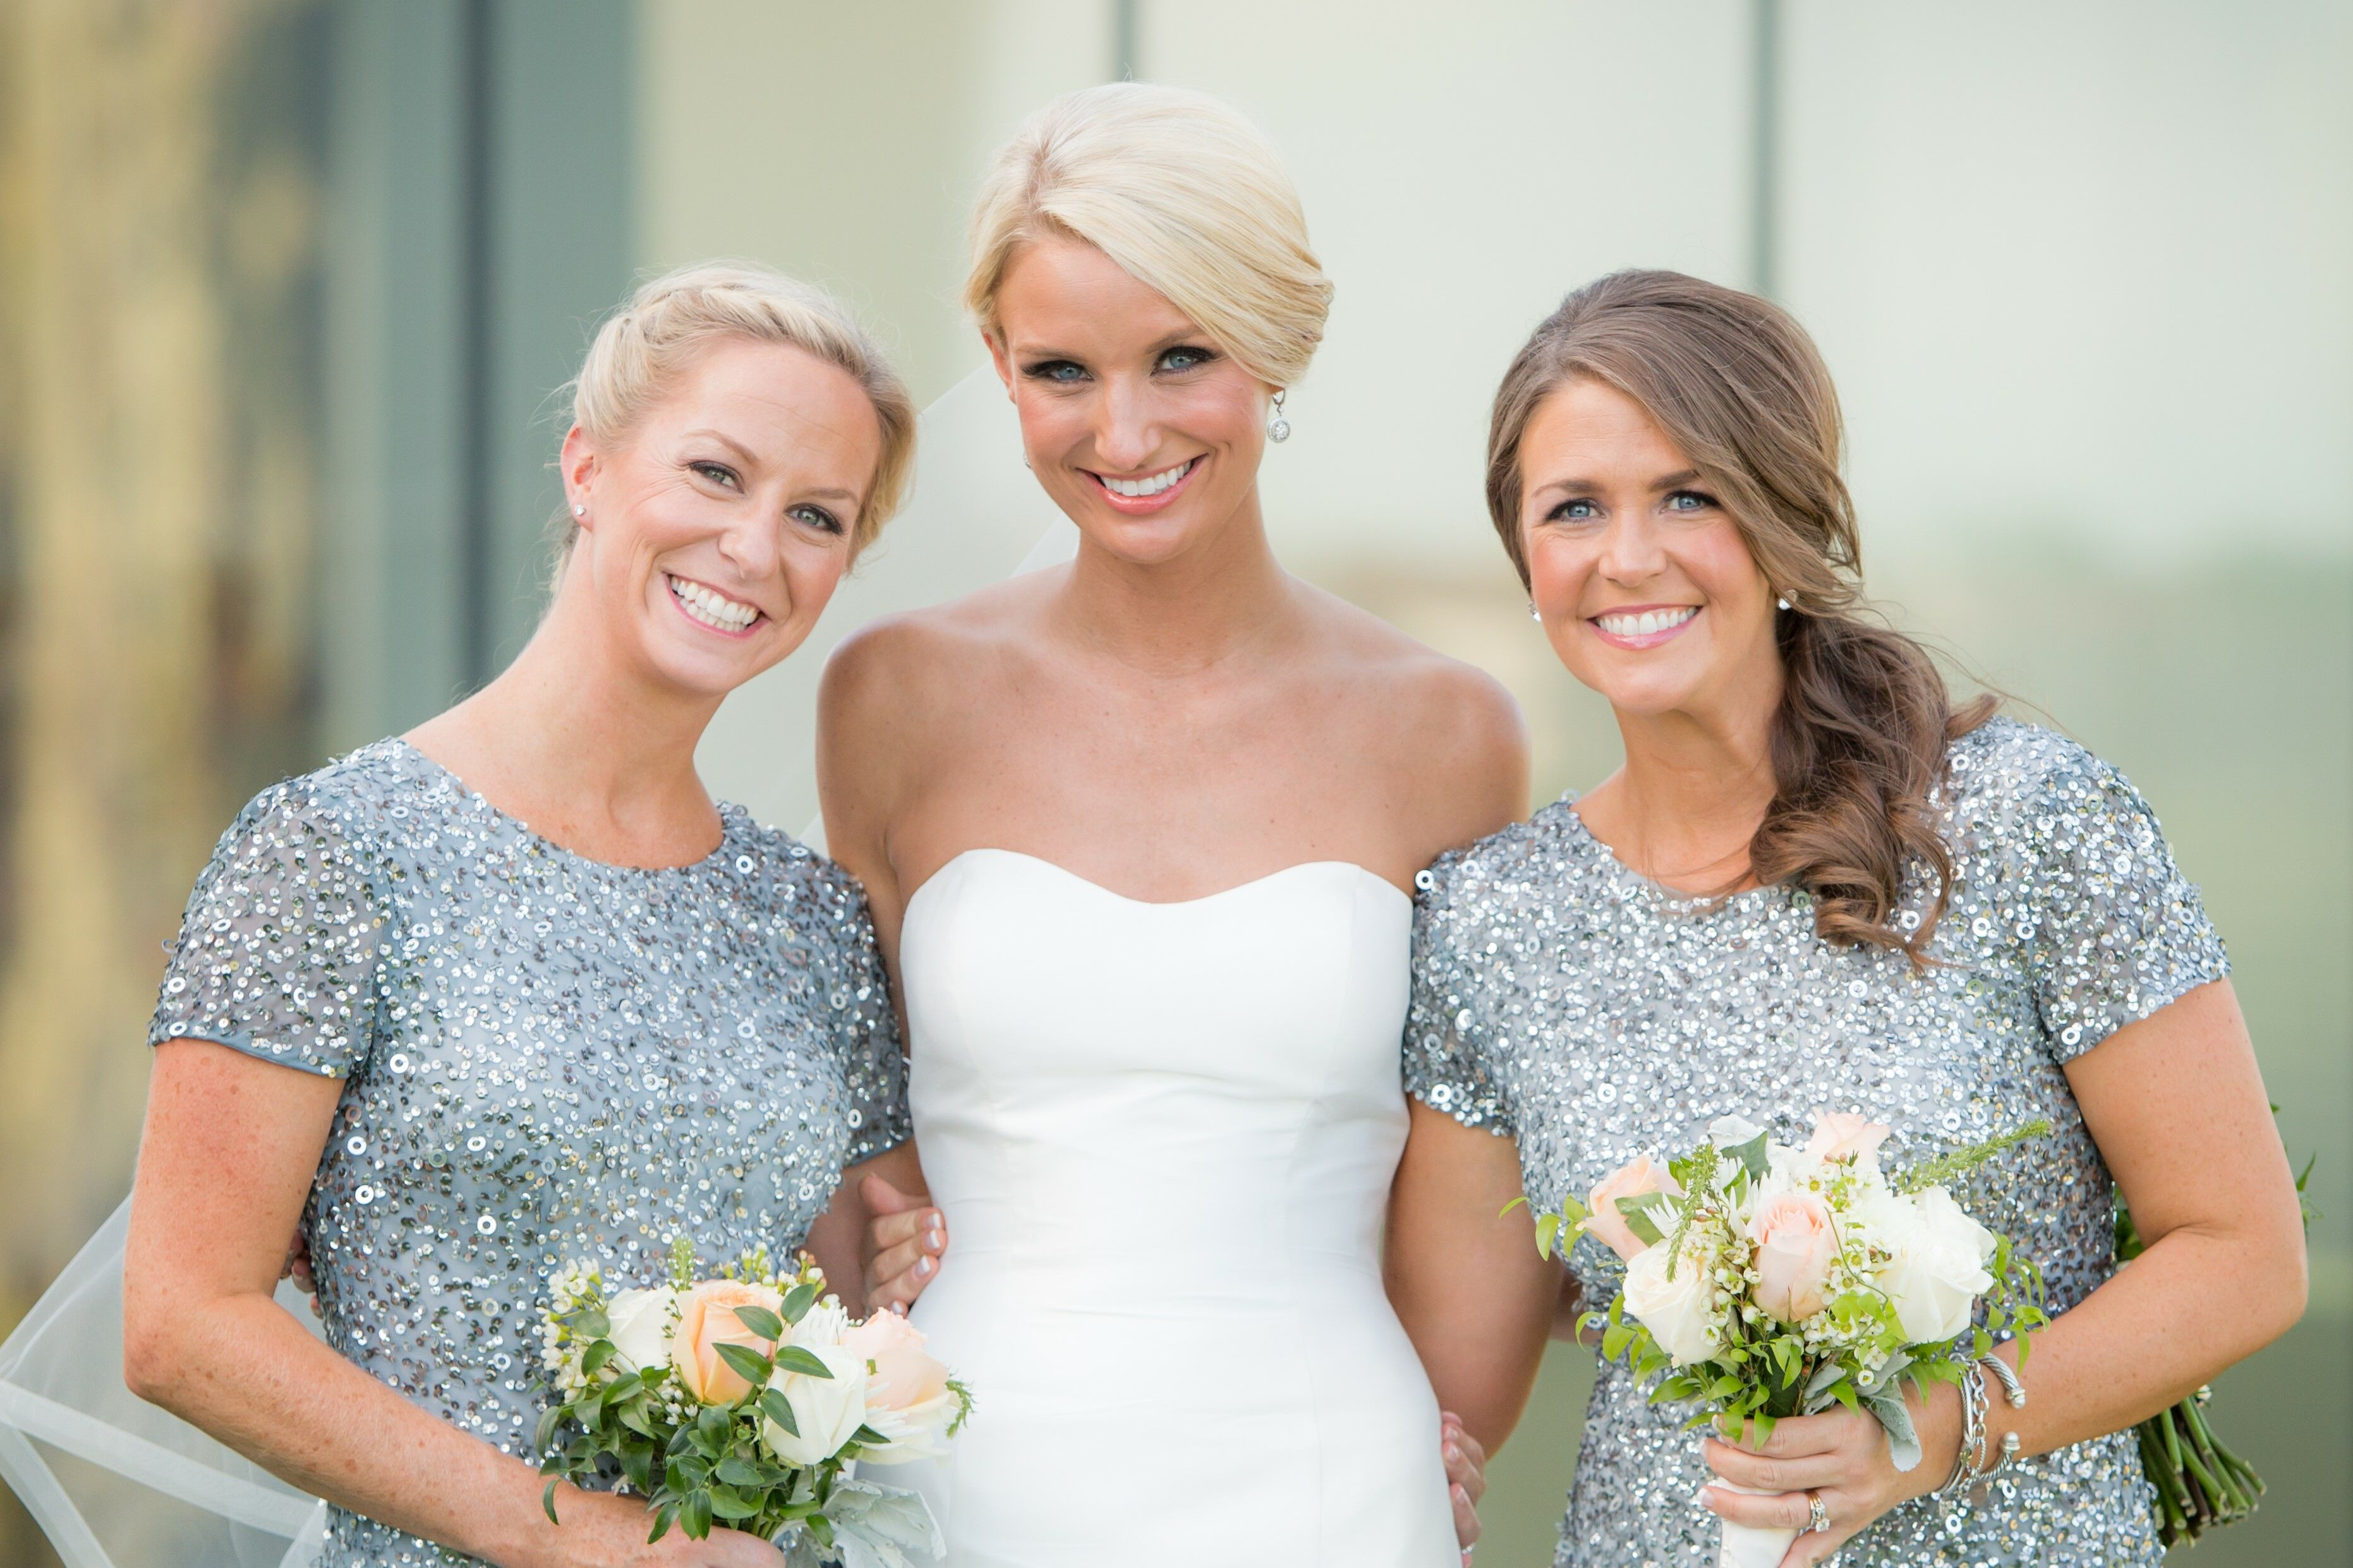 Bridal Salons in Kansas City, MO - The Knot